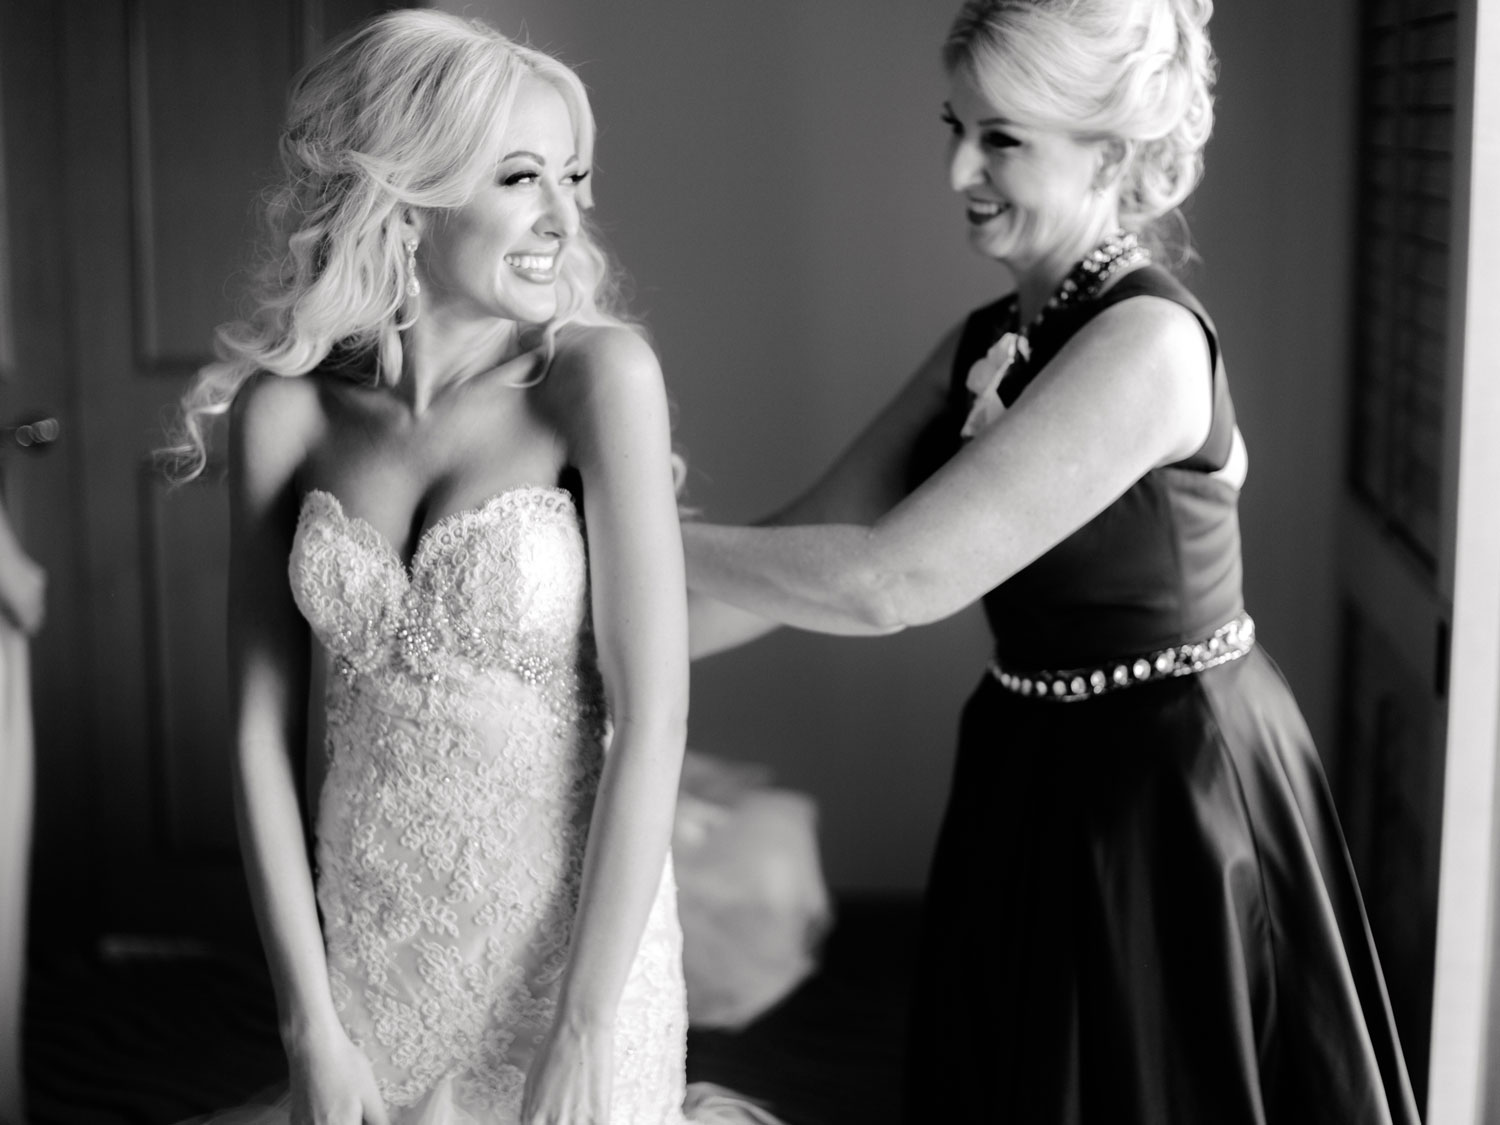 Black and white photo of bride smiling as her mom helps her into her gown wedding